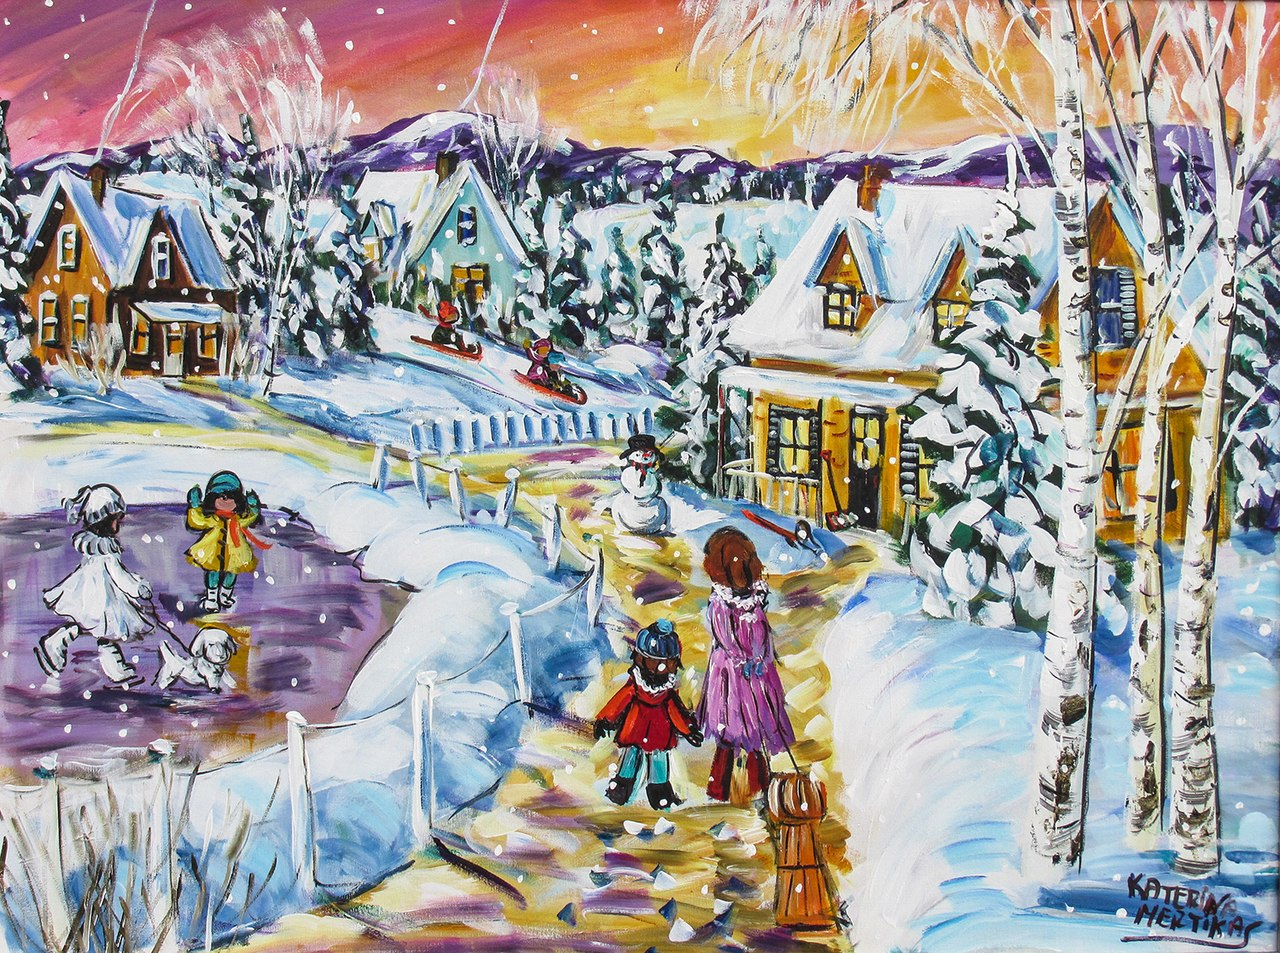 Mertikas: Magic Winter - 750pc Jigsaw Puzzle By Standout Puzzles  			  					NEW